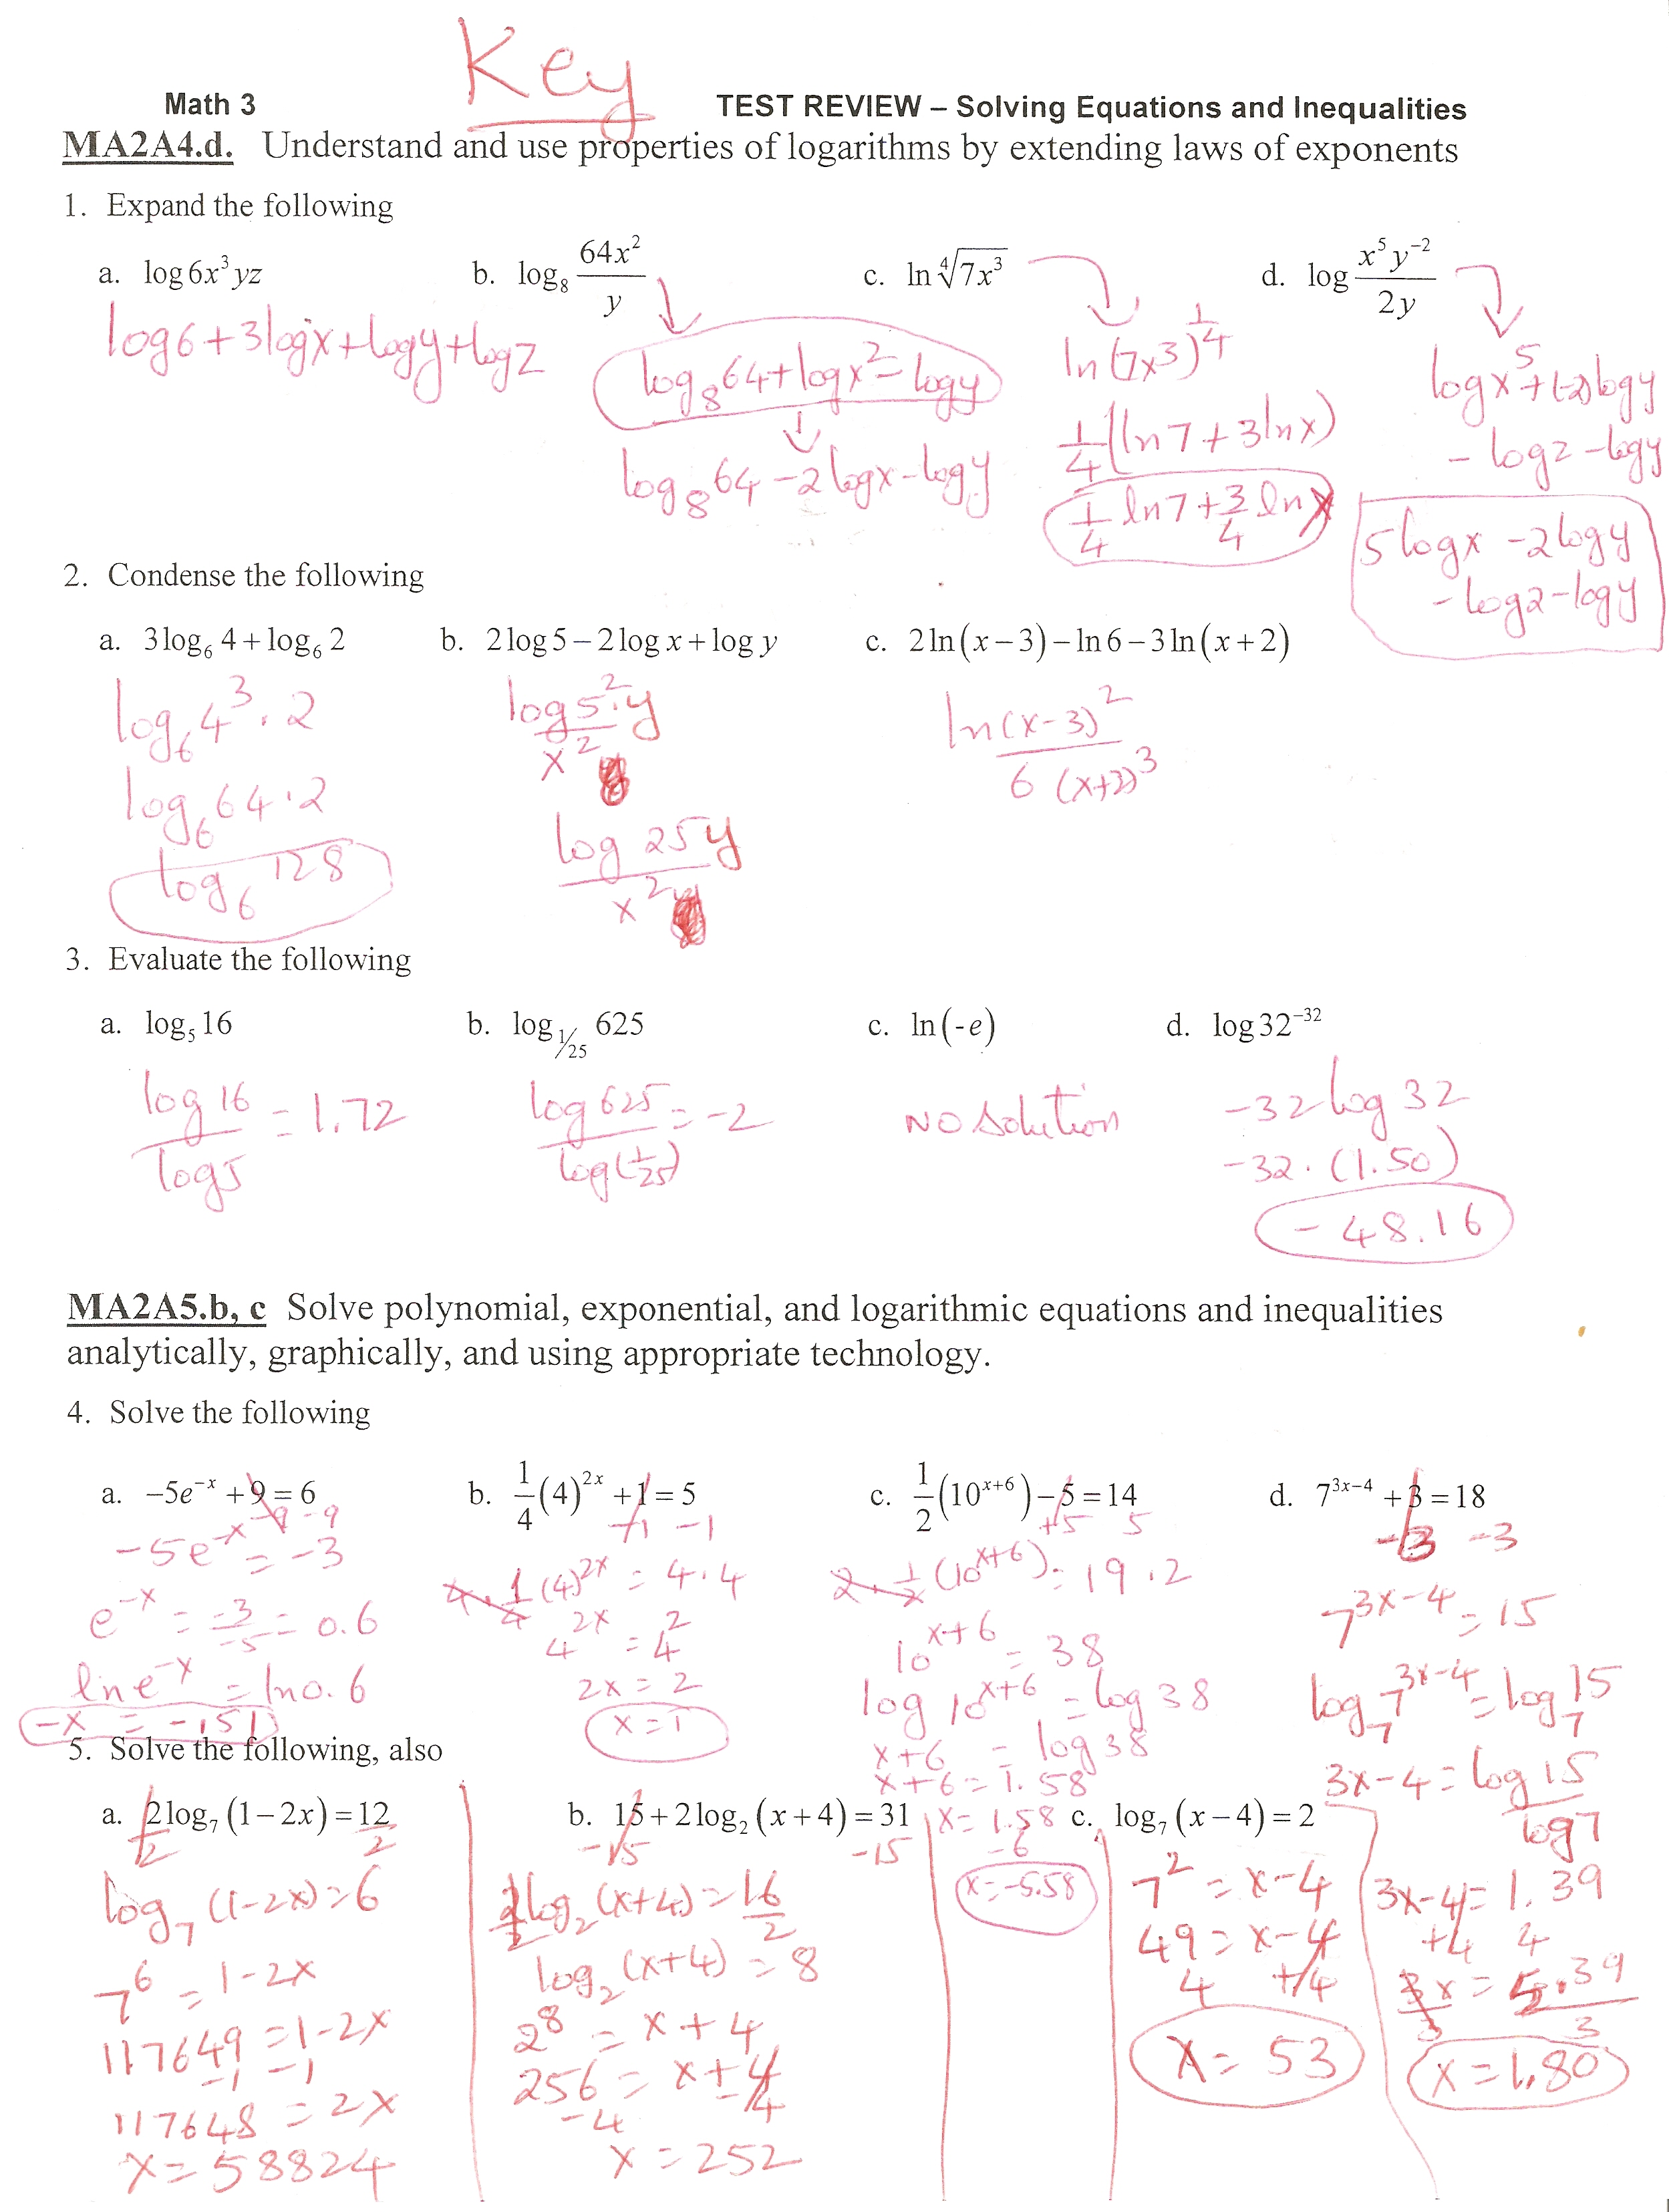 worksheet Solving Exponential And Logarithmic Functions Worksheet Answers solving exponential and log equations test review ms osawaru this photo